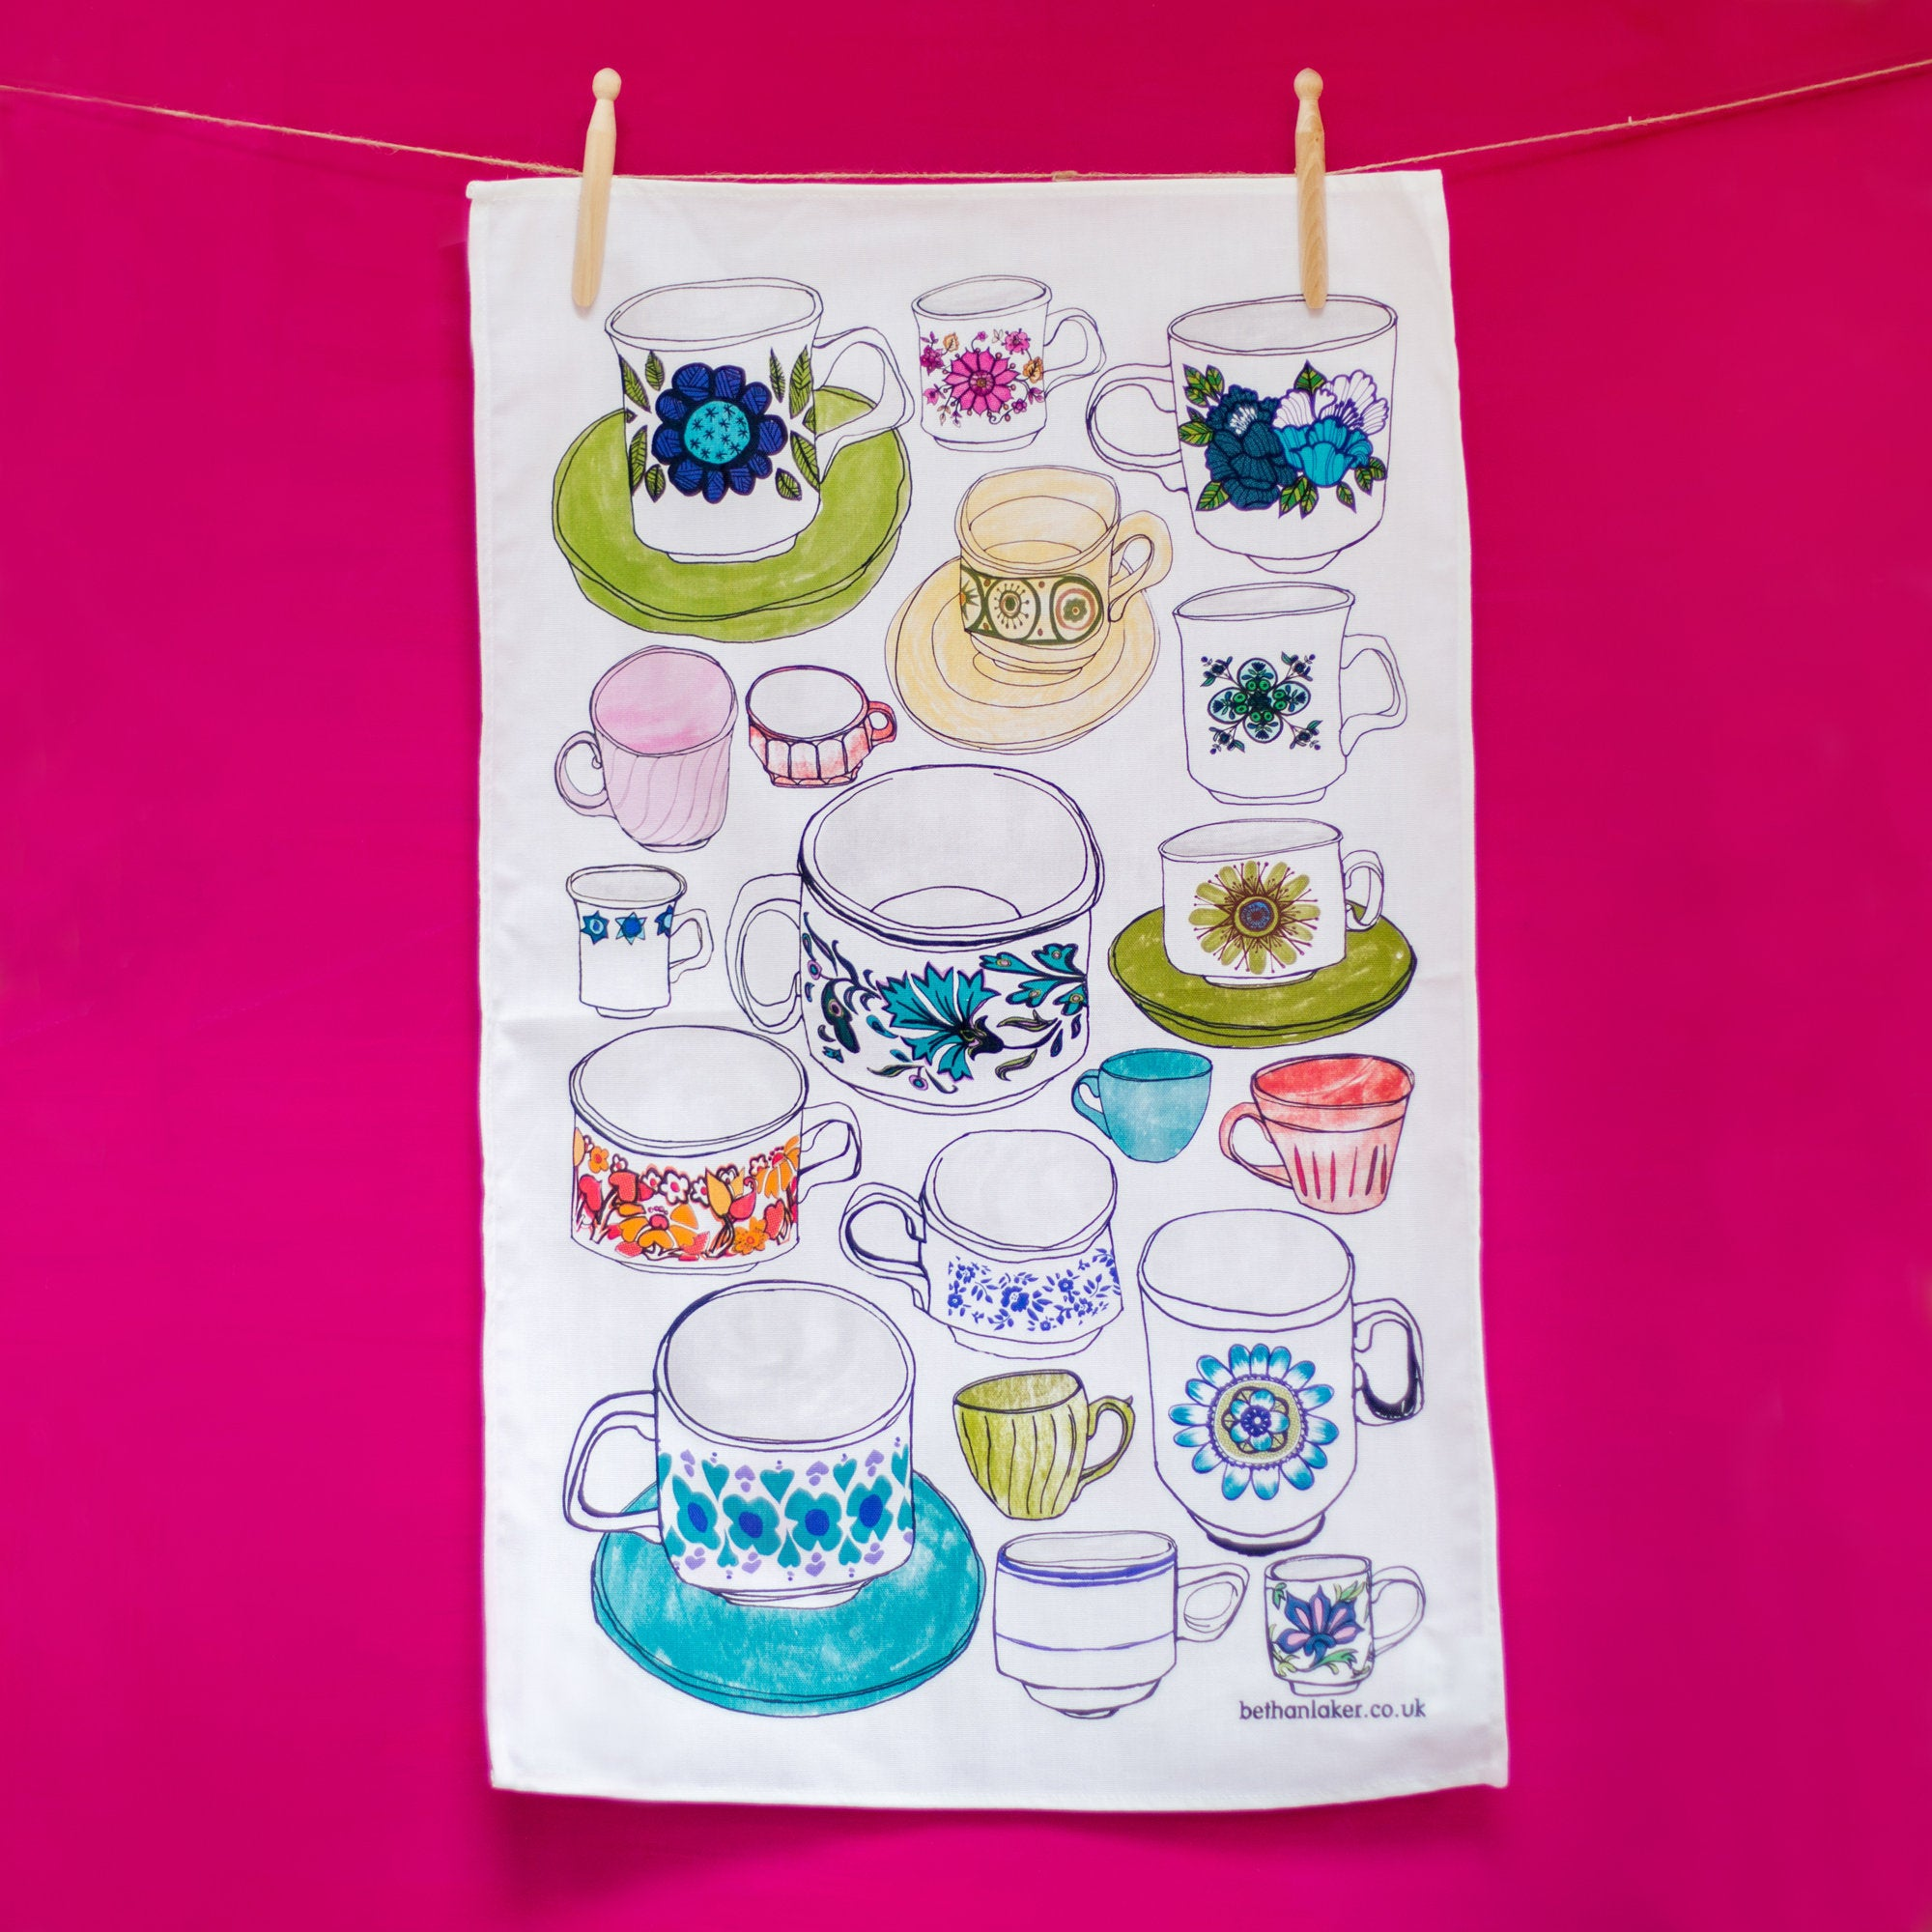 'Fill Your Cups!' 100% Cotton Tea Towel